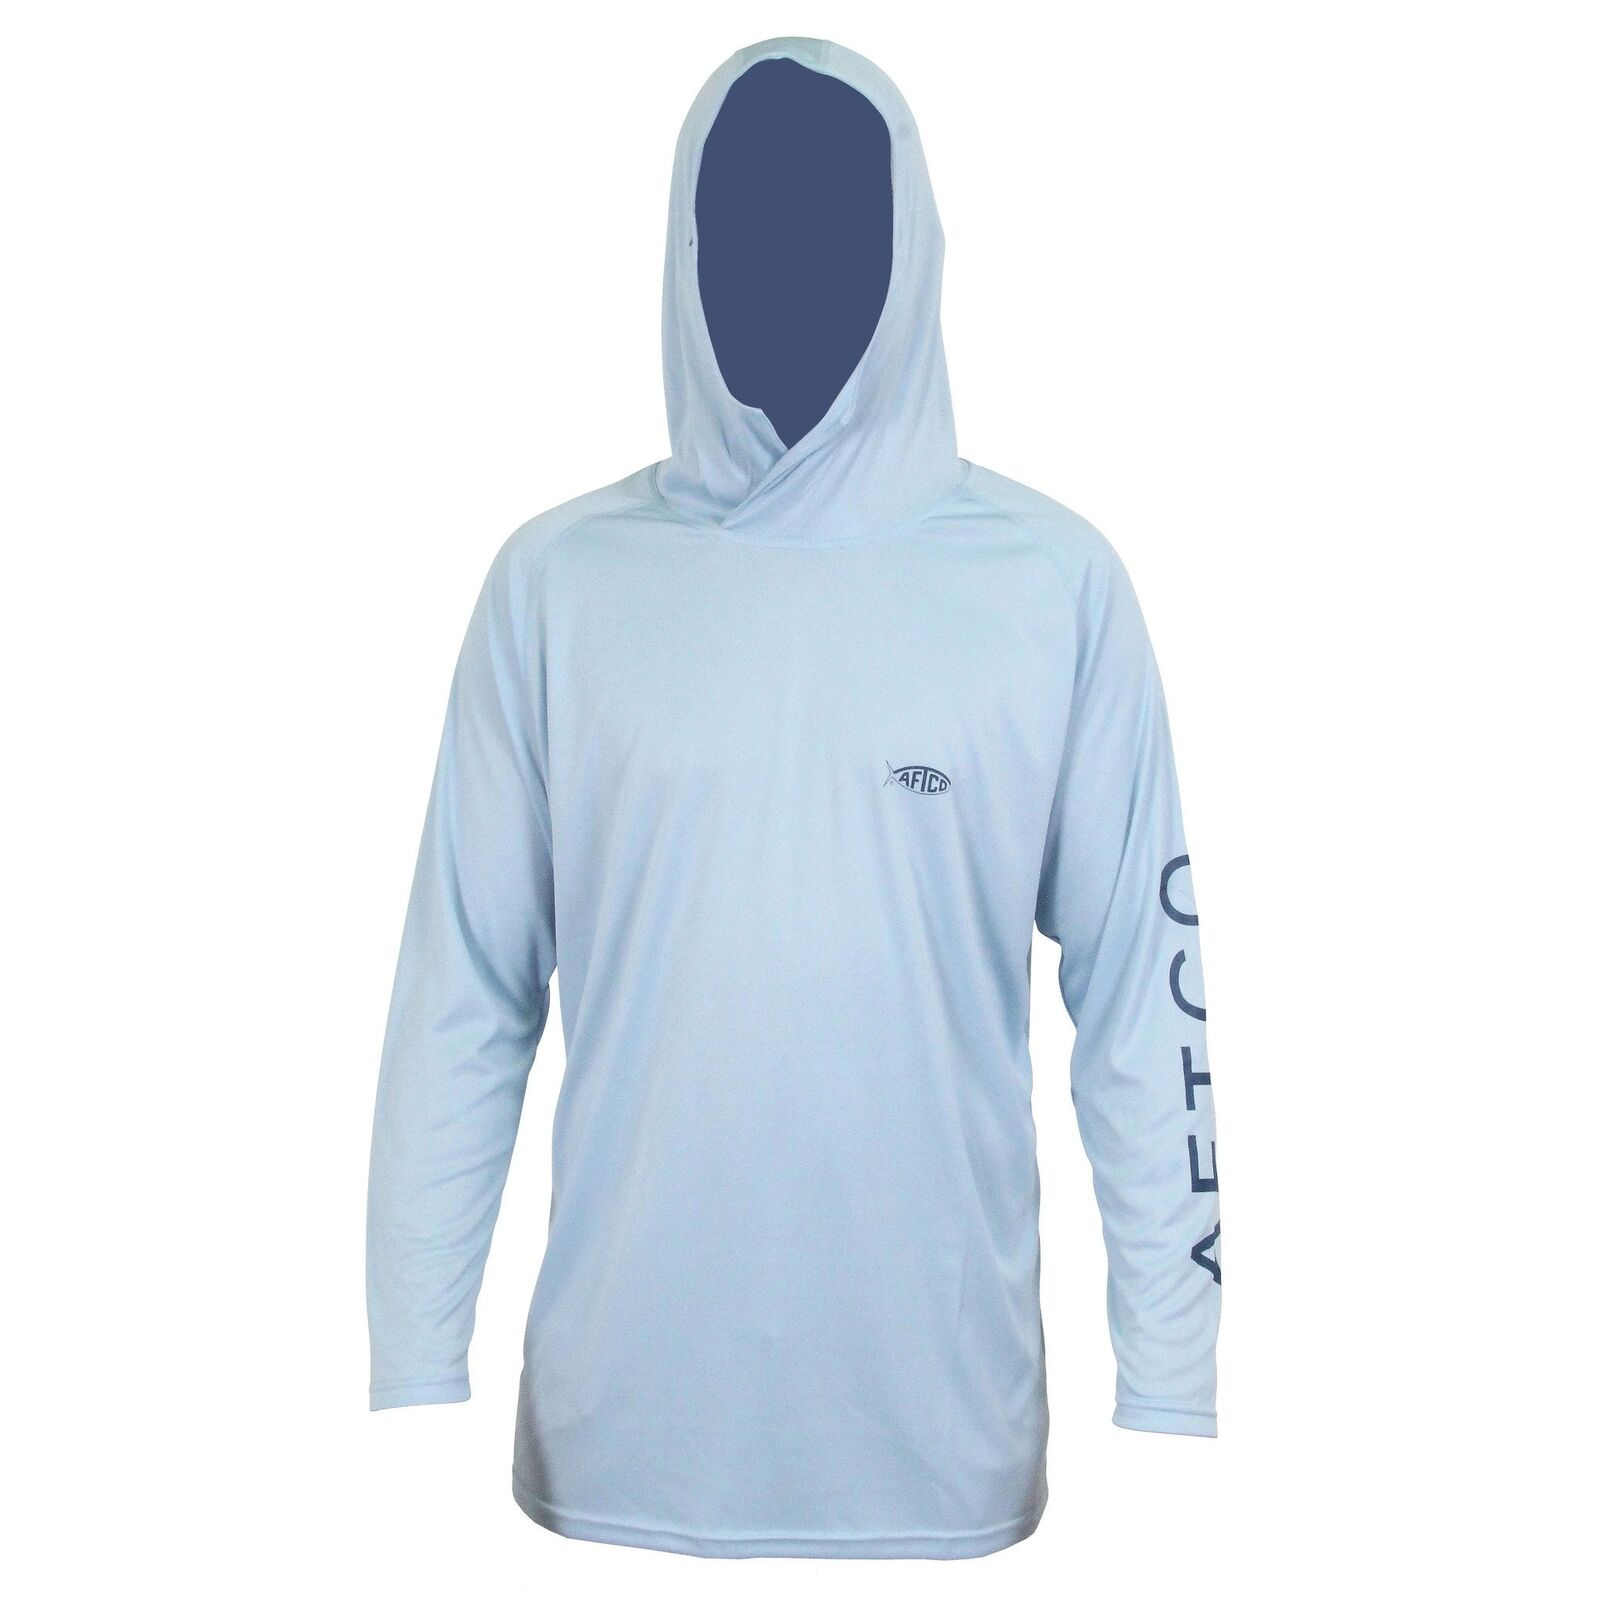 AFTCO Samurai Sun Predection Hoodie-Fishing Shirt-UPF 50- Sky bluee-Free Shipping